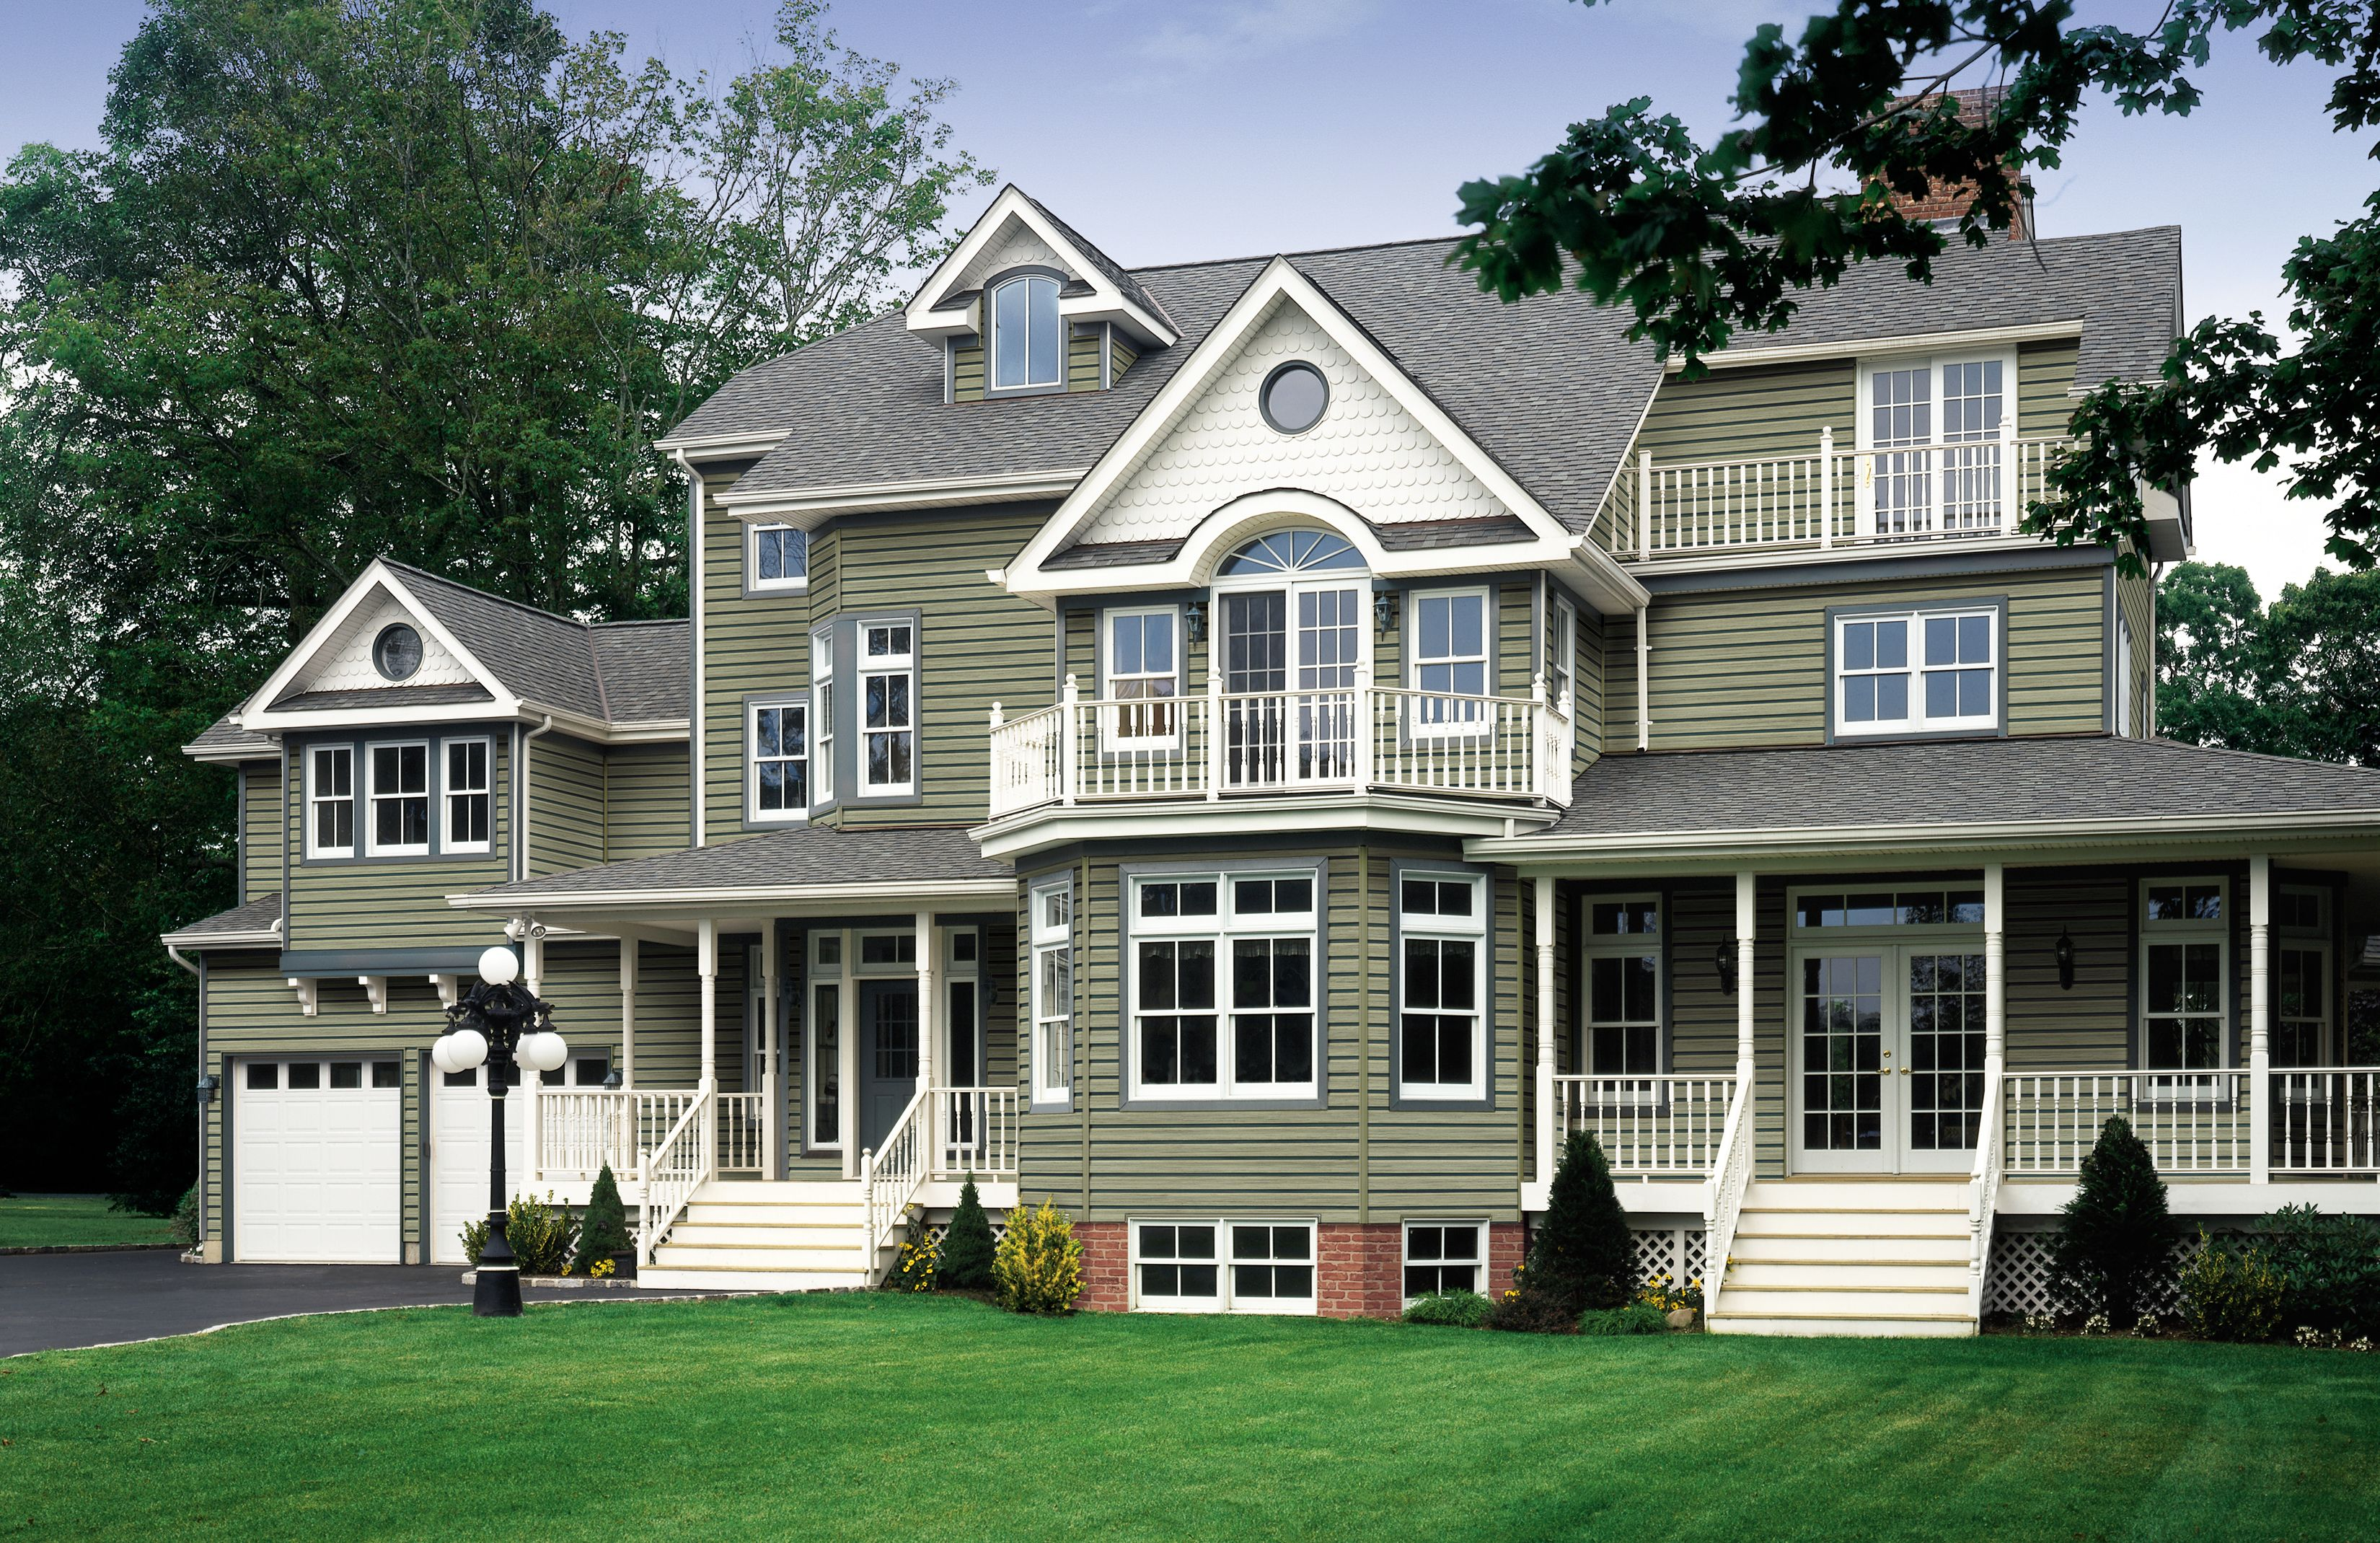 Certainteed Siding Monogram Arbor Blend Siding